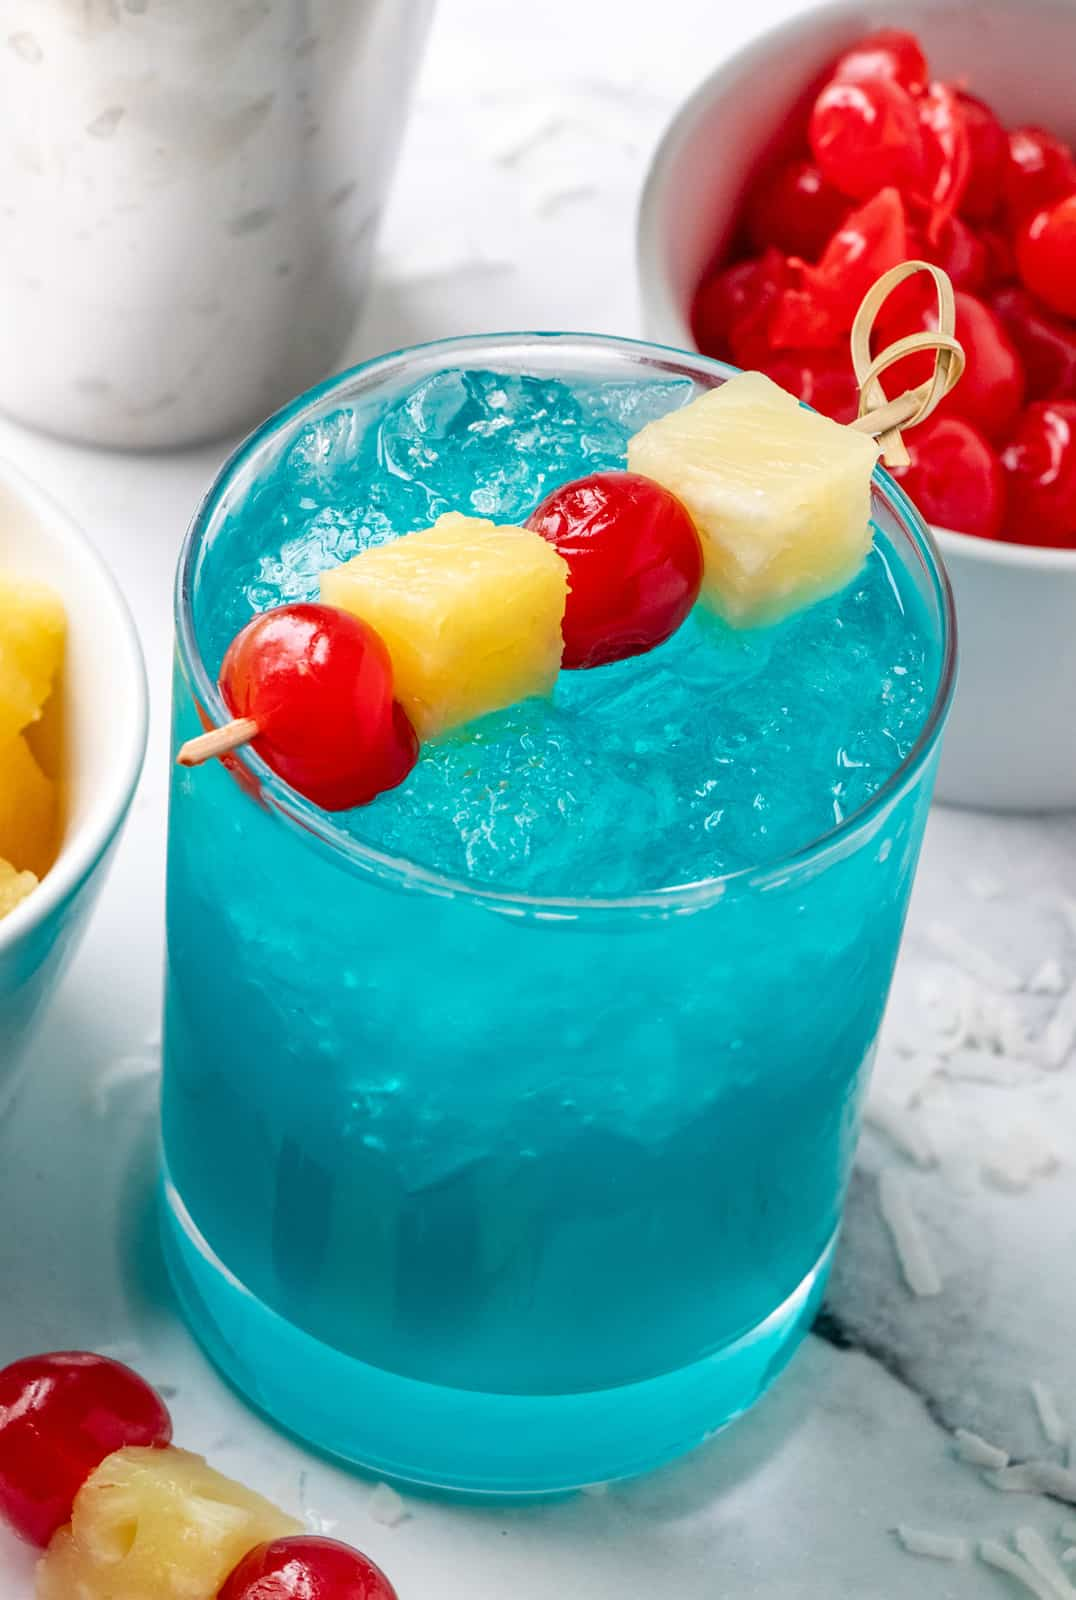 Close up of cocktail with a long skewer holding pineapple and cherries